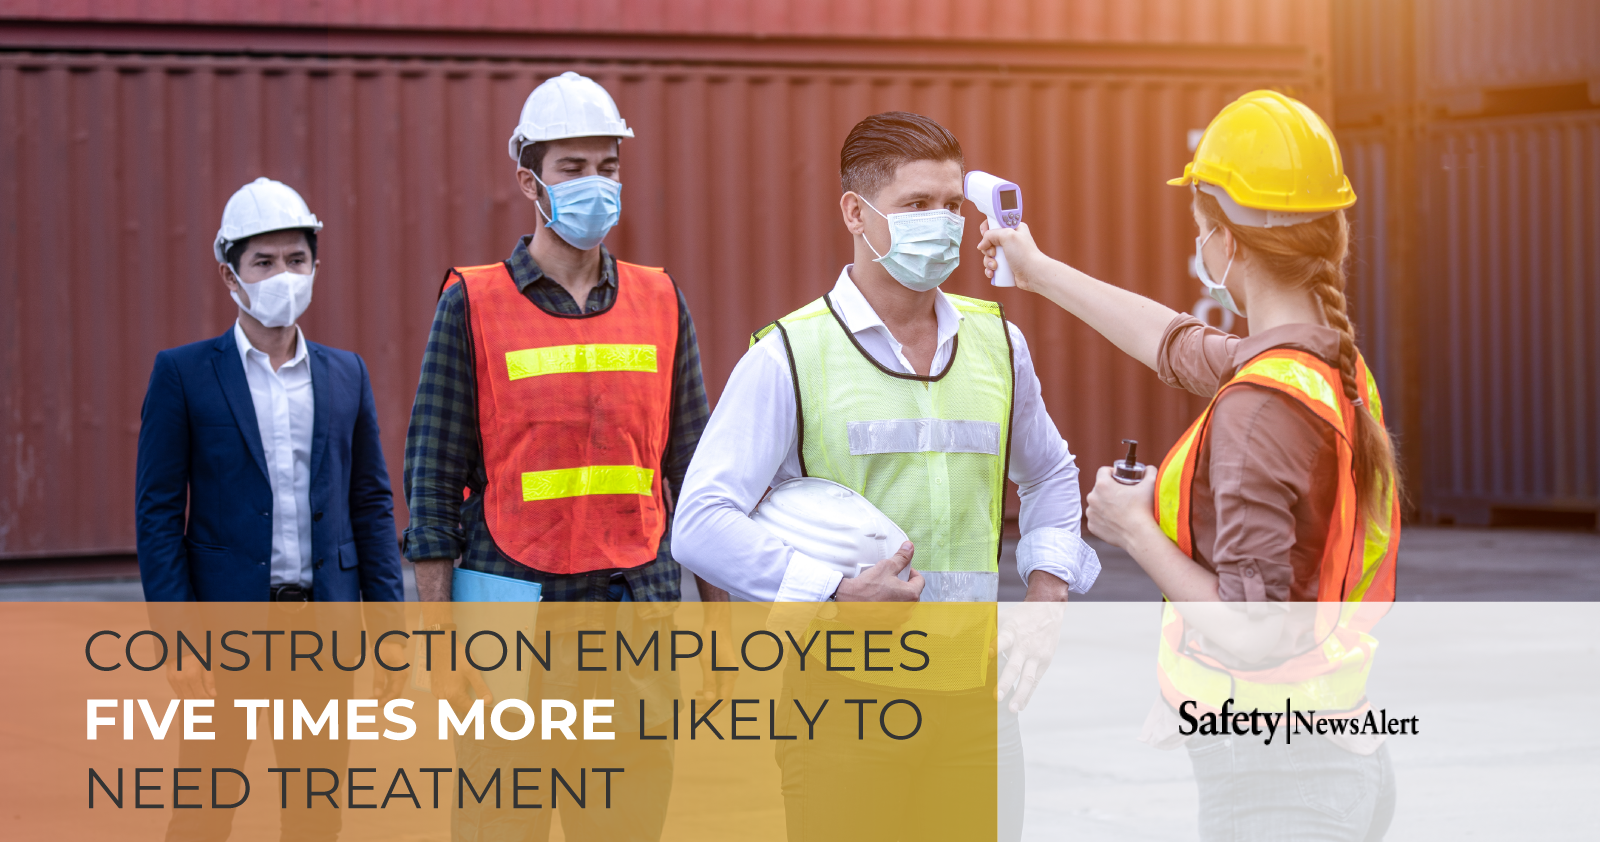 construction employees five times more likely to need treatment